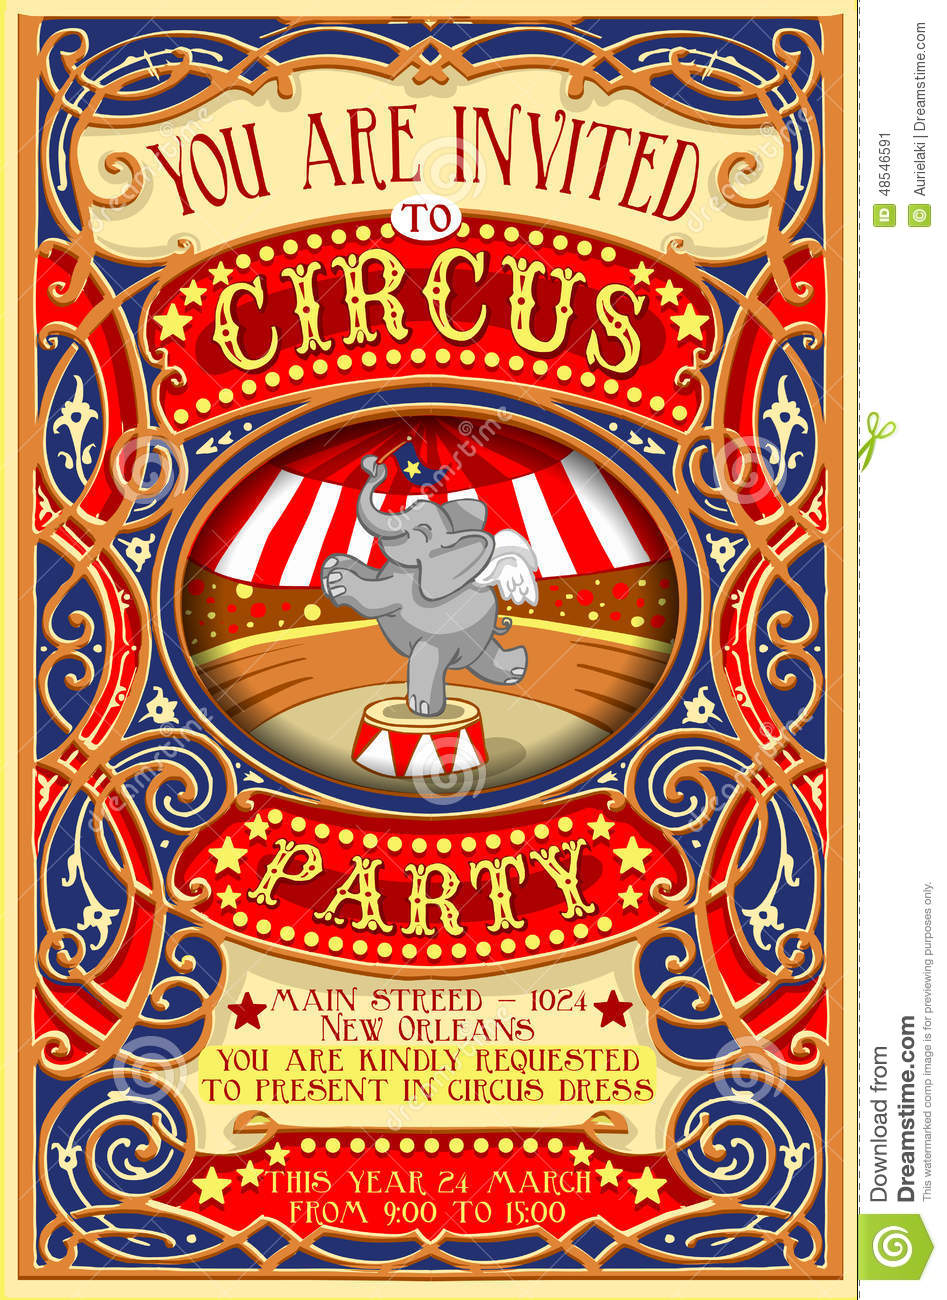 Poster Invite For Circus Party With Elephnant Stock Vector - Image ...